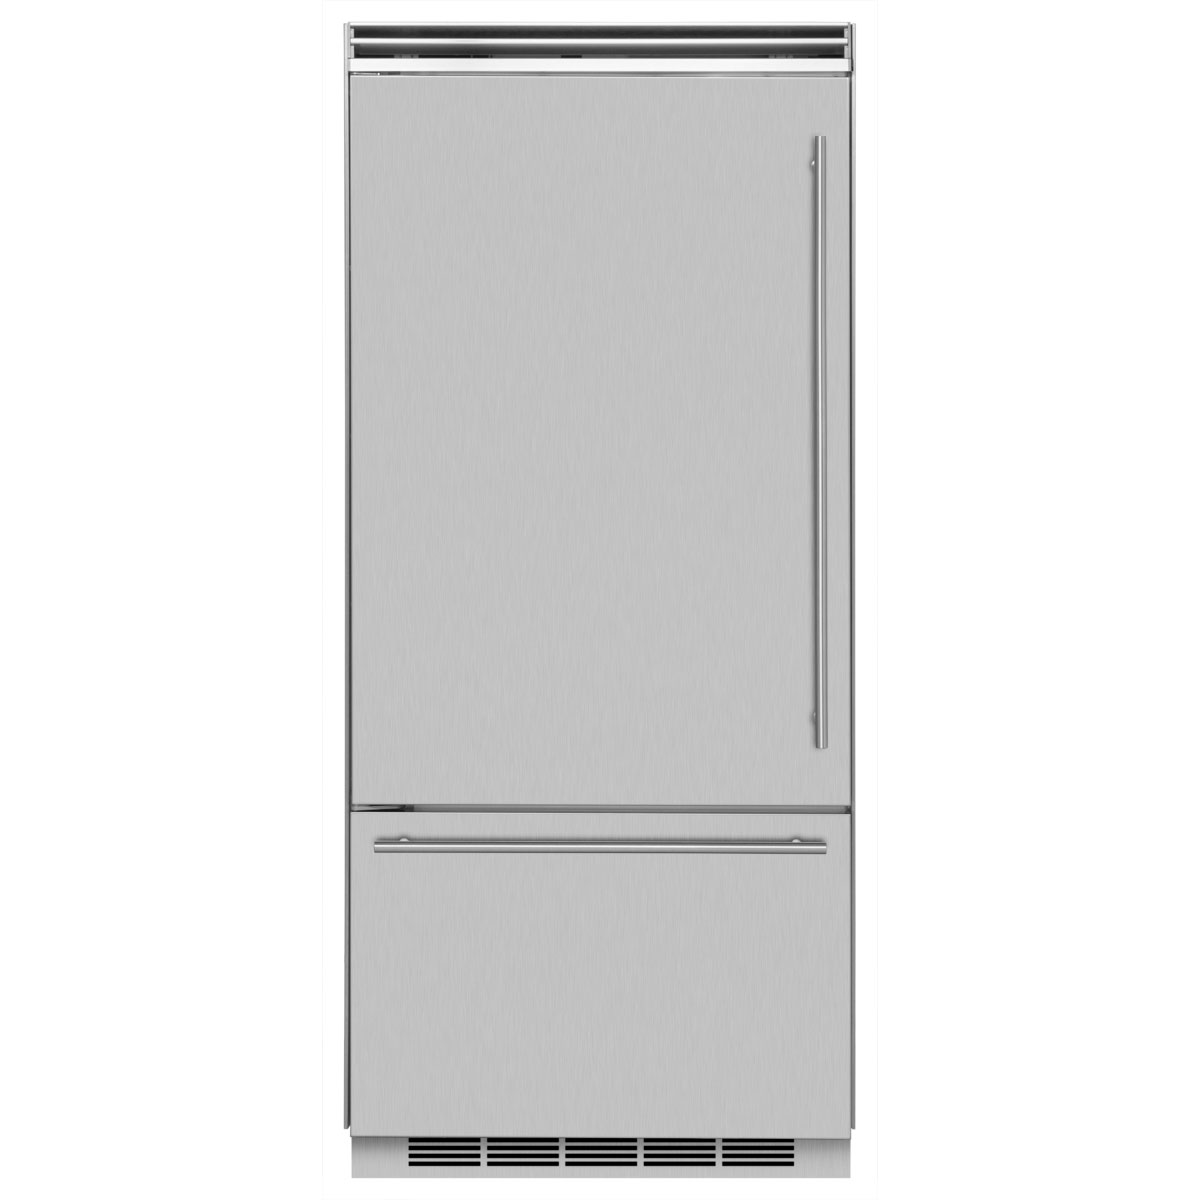 "Marvel  Marvel Professional Built-In 36"" Bottom Freezer Refrigerator- Solid Stainless Steel Door   Left Hinge, Slim Designer Handle"